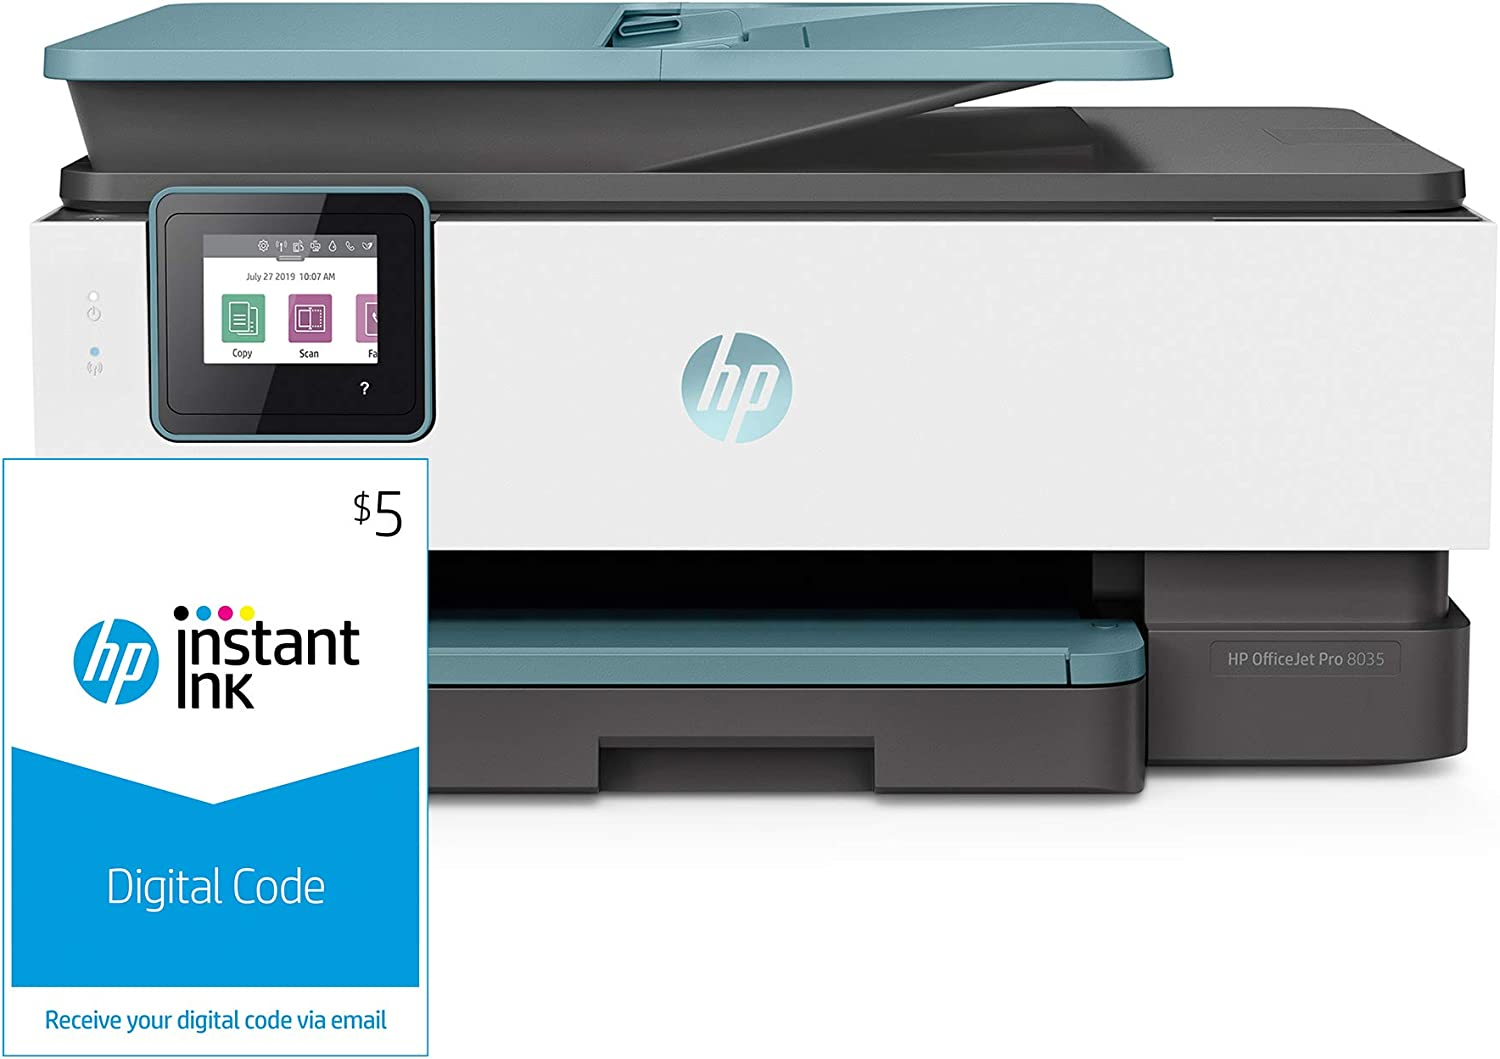 HP OfficeJet Pro 8035 All-in-One Wireless Printer – Oasis (3UC66A) and Instant Ink $5 Prepaid Code